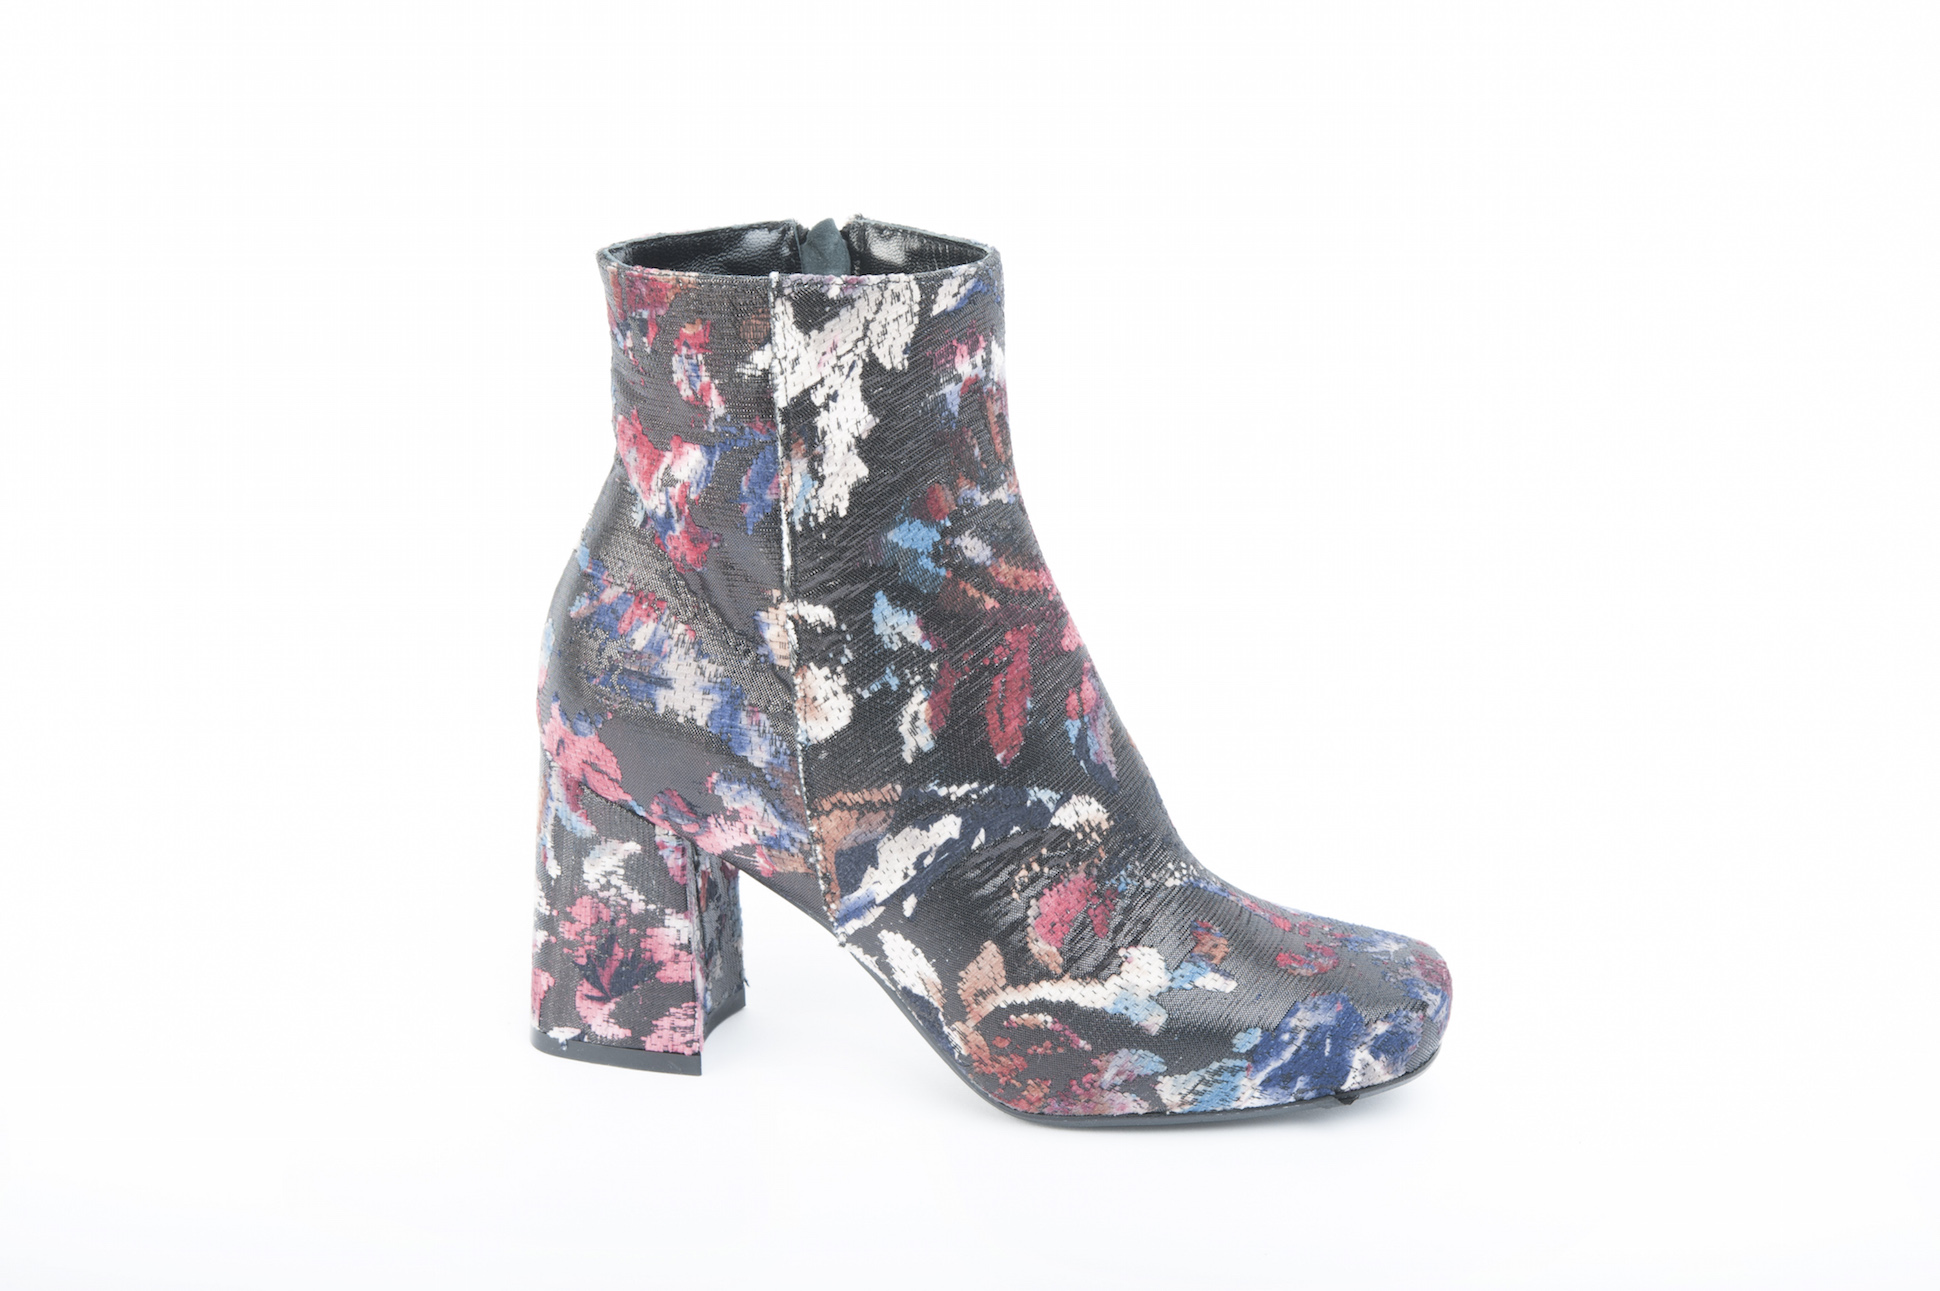 19317aac8be8d Ankle boots multicolor in leather. – Luca Calzature E-store